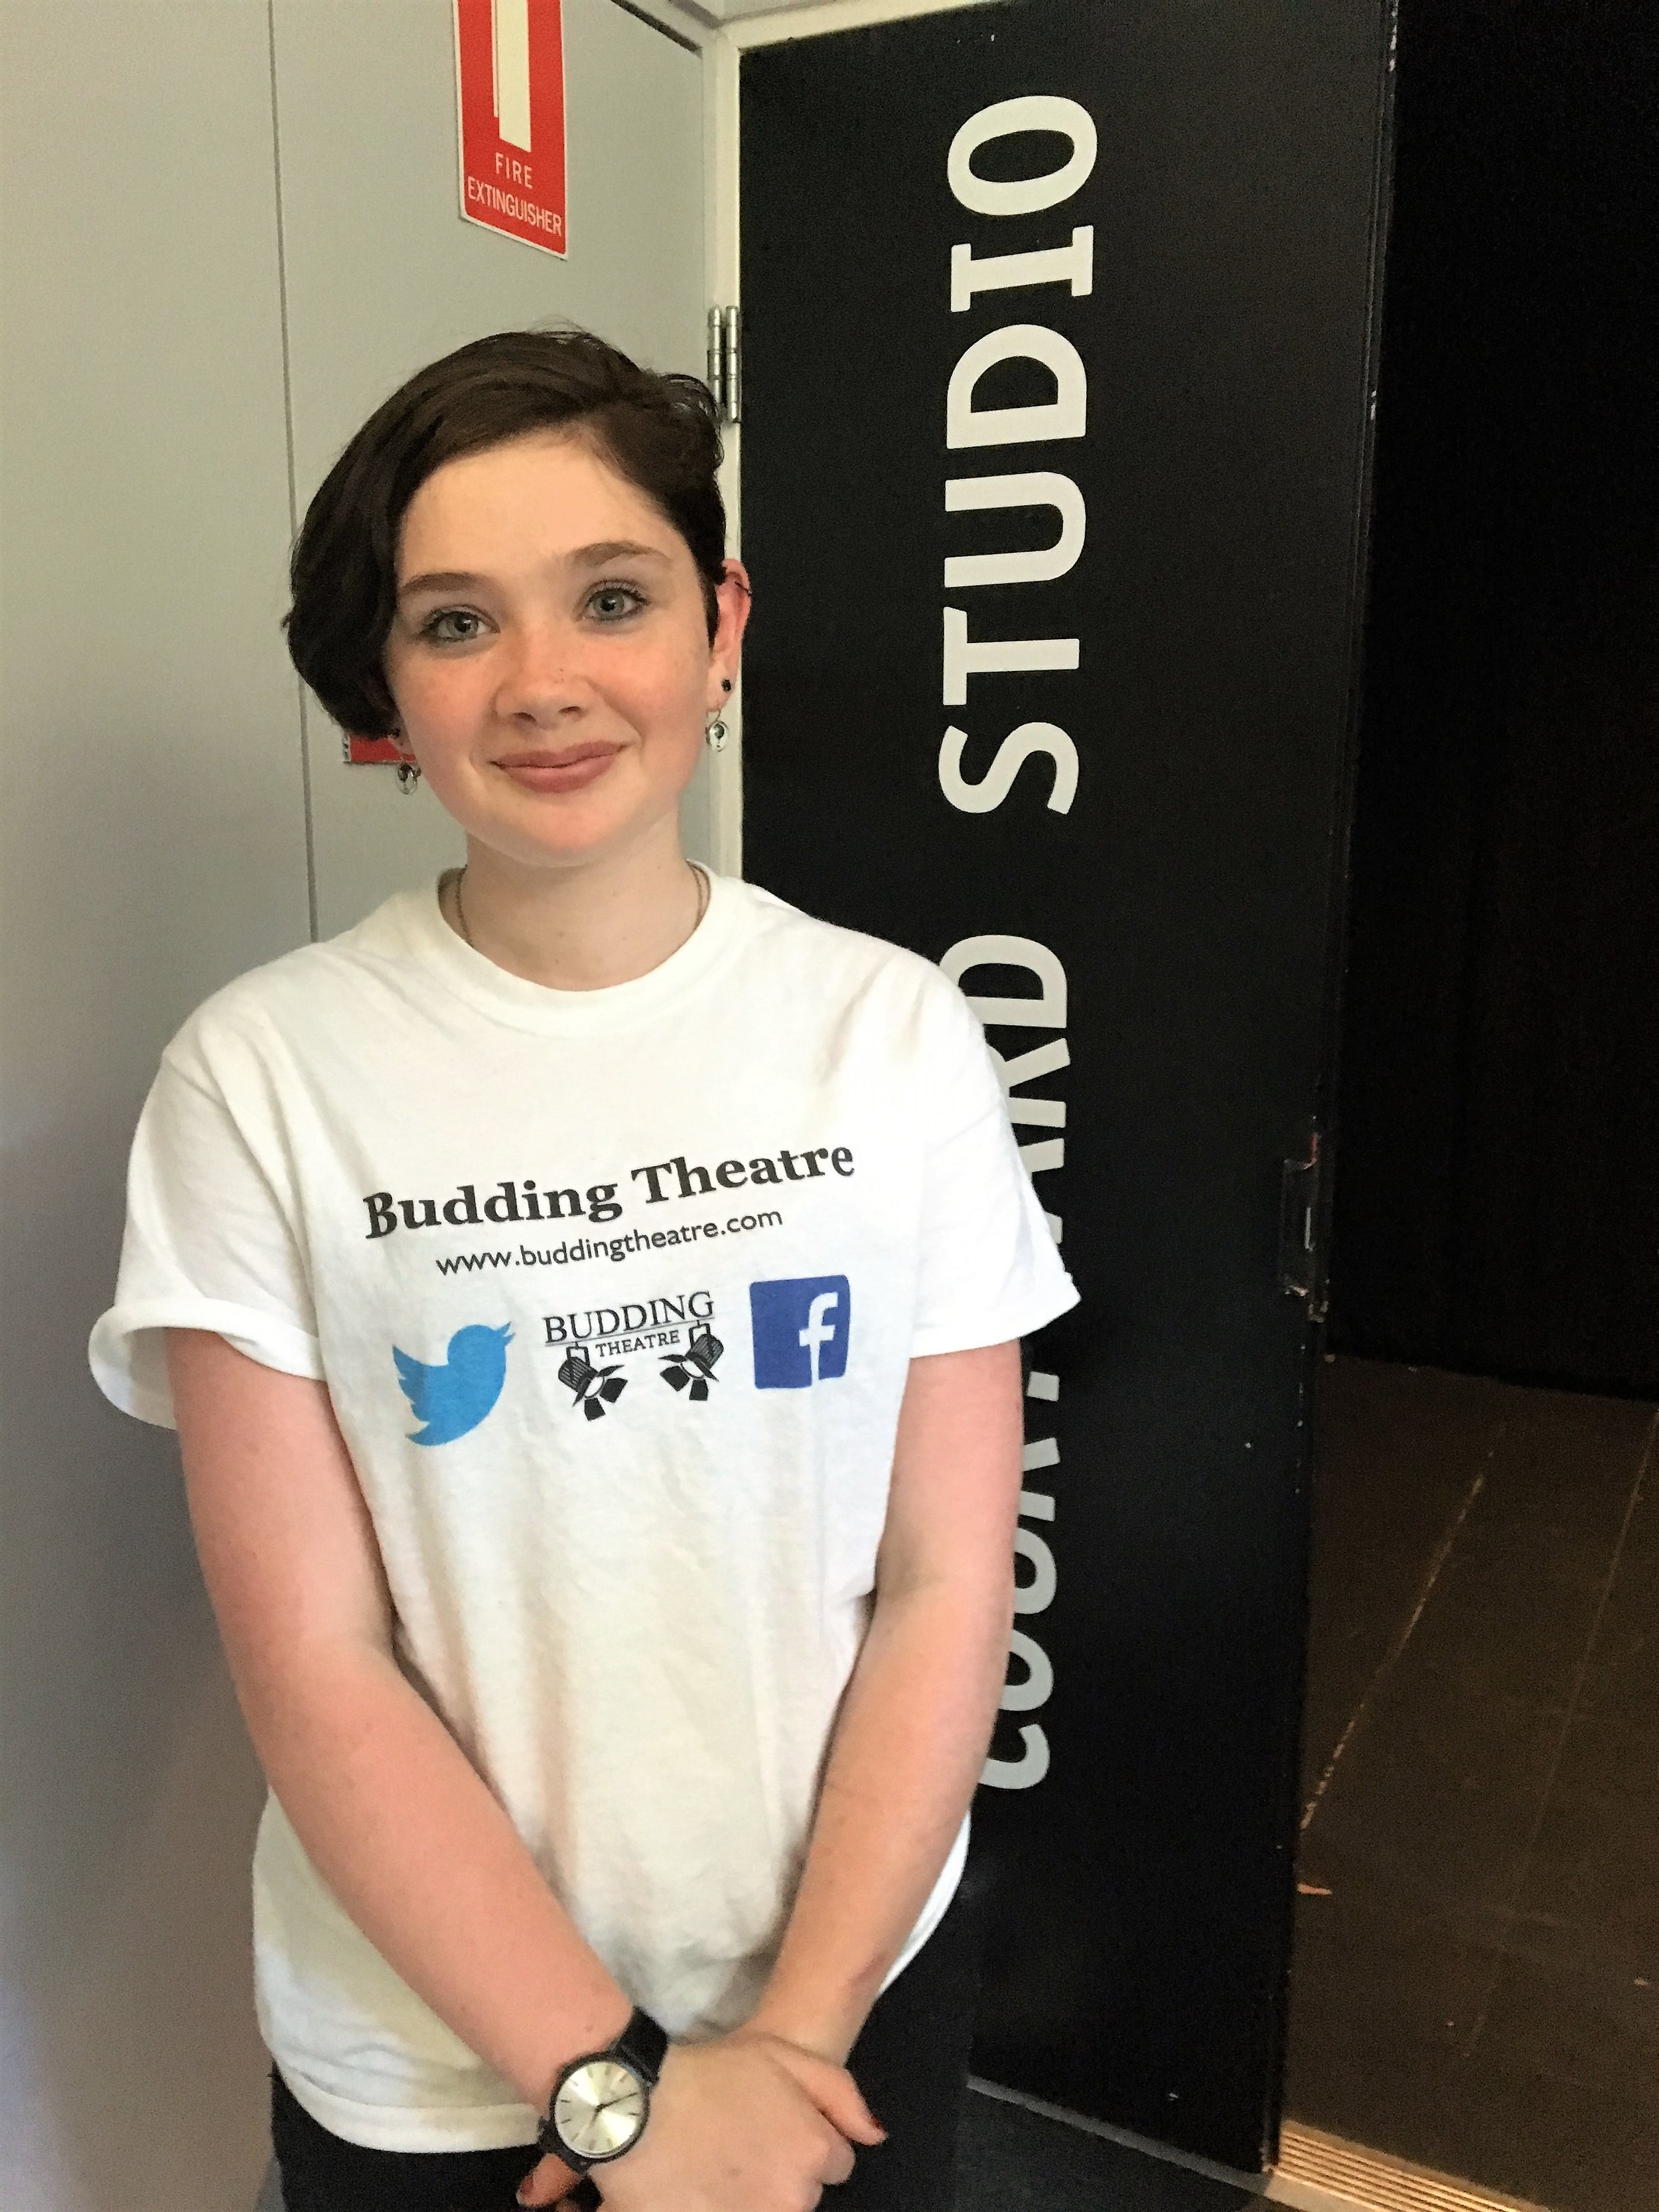 Budding Theatre Volunteers Canberra